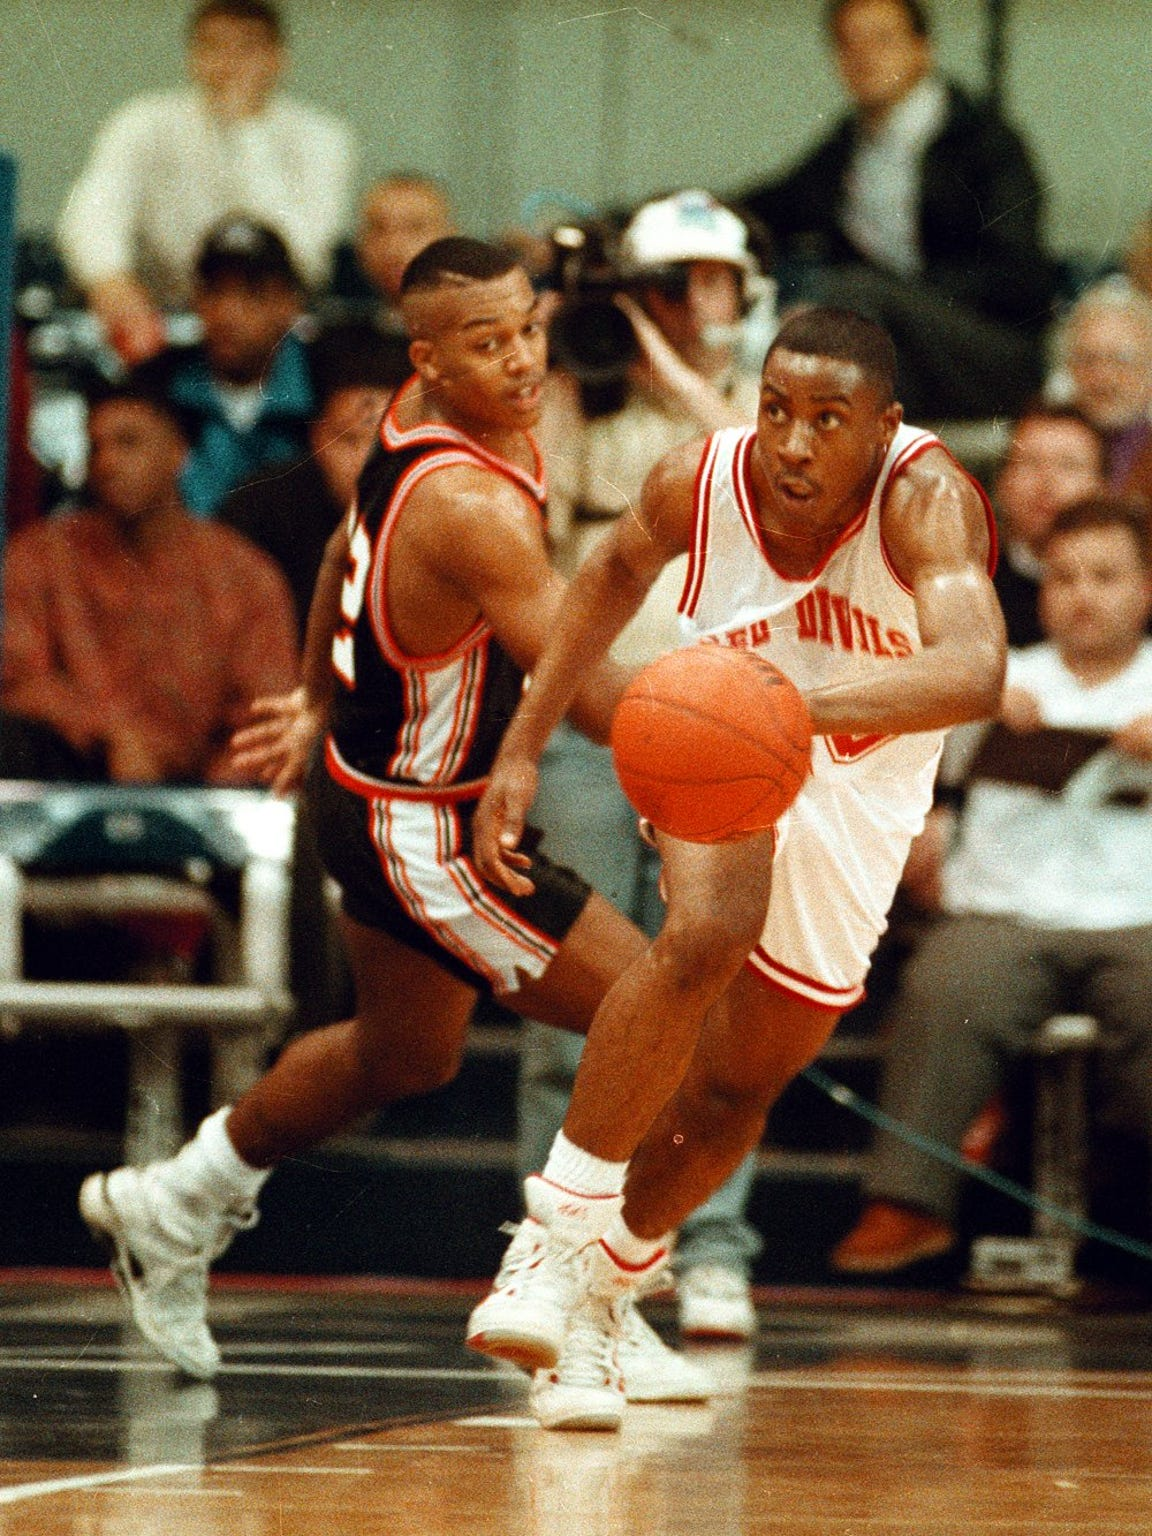 Chad Austin pictured during a 1992 semi-state game at Hinkle Fieldhouse.